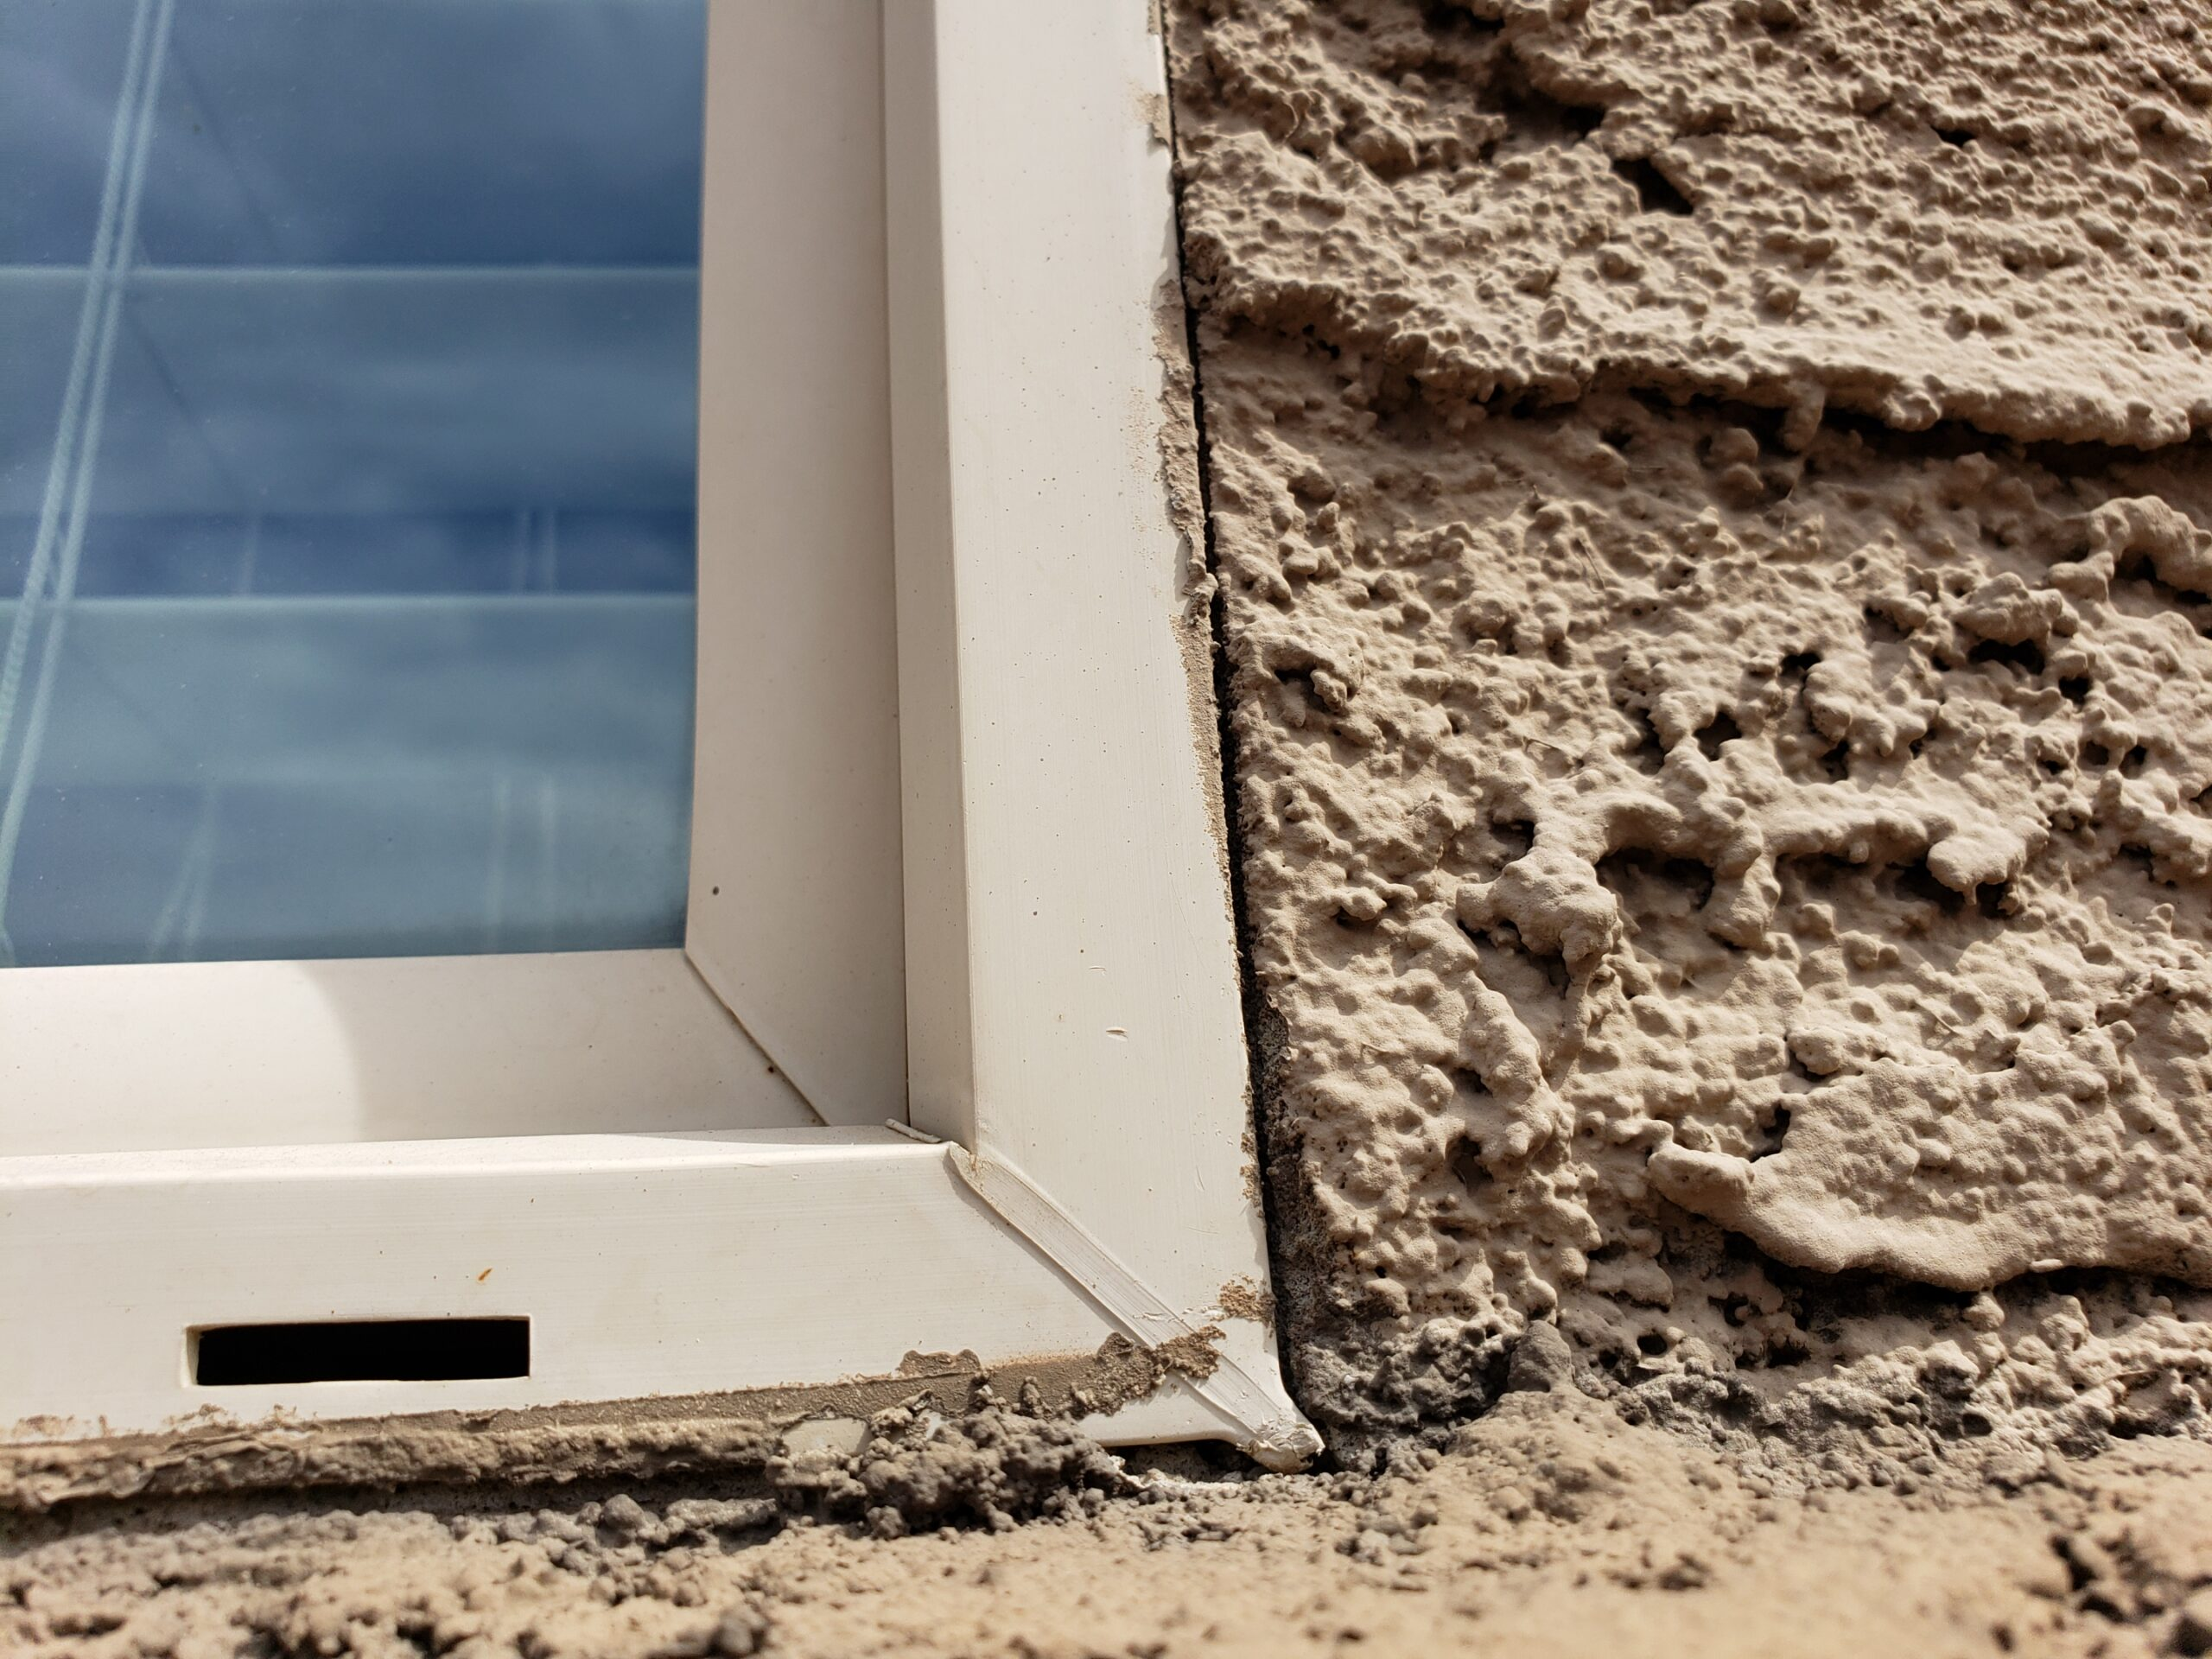 Caulk Any Stucco Gap At Windows To Prevent Leaks And Damage